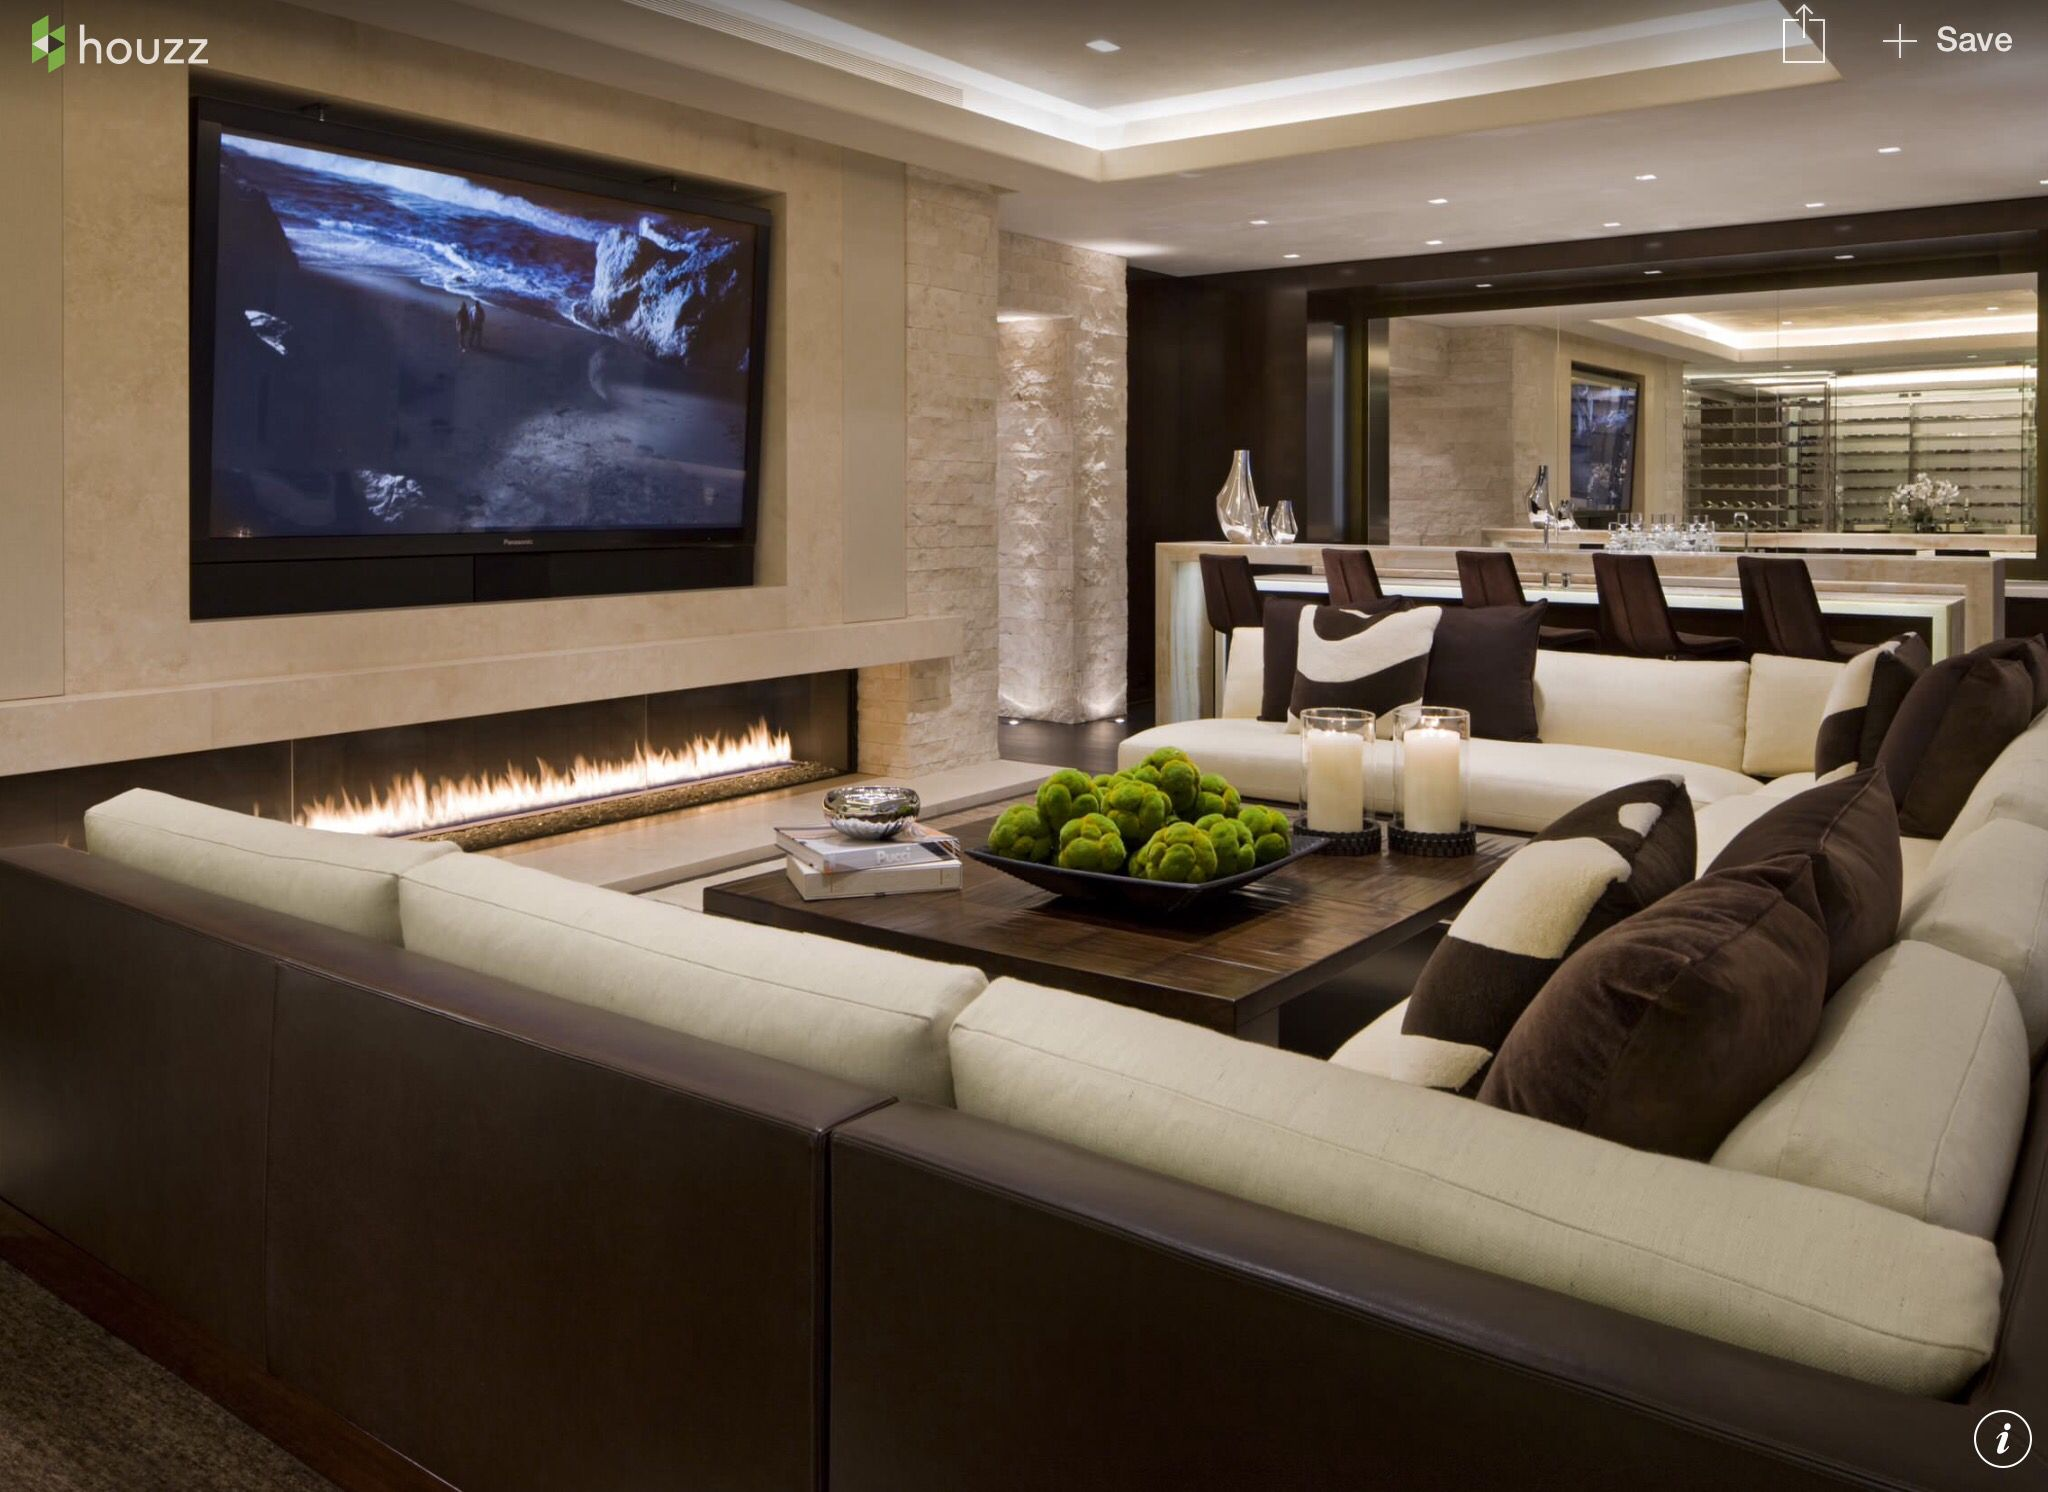 Home Cinema Maison Affordable Automation System With Home Cinema  # Living Salon Bois Emplacement Tv